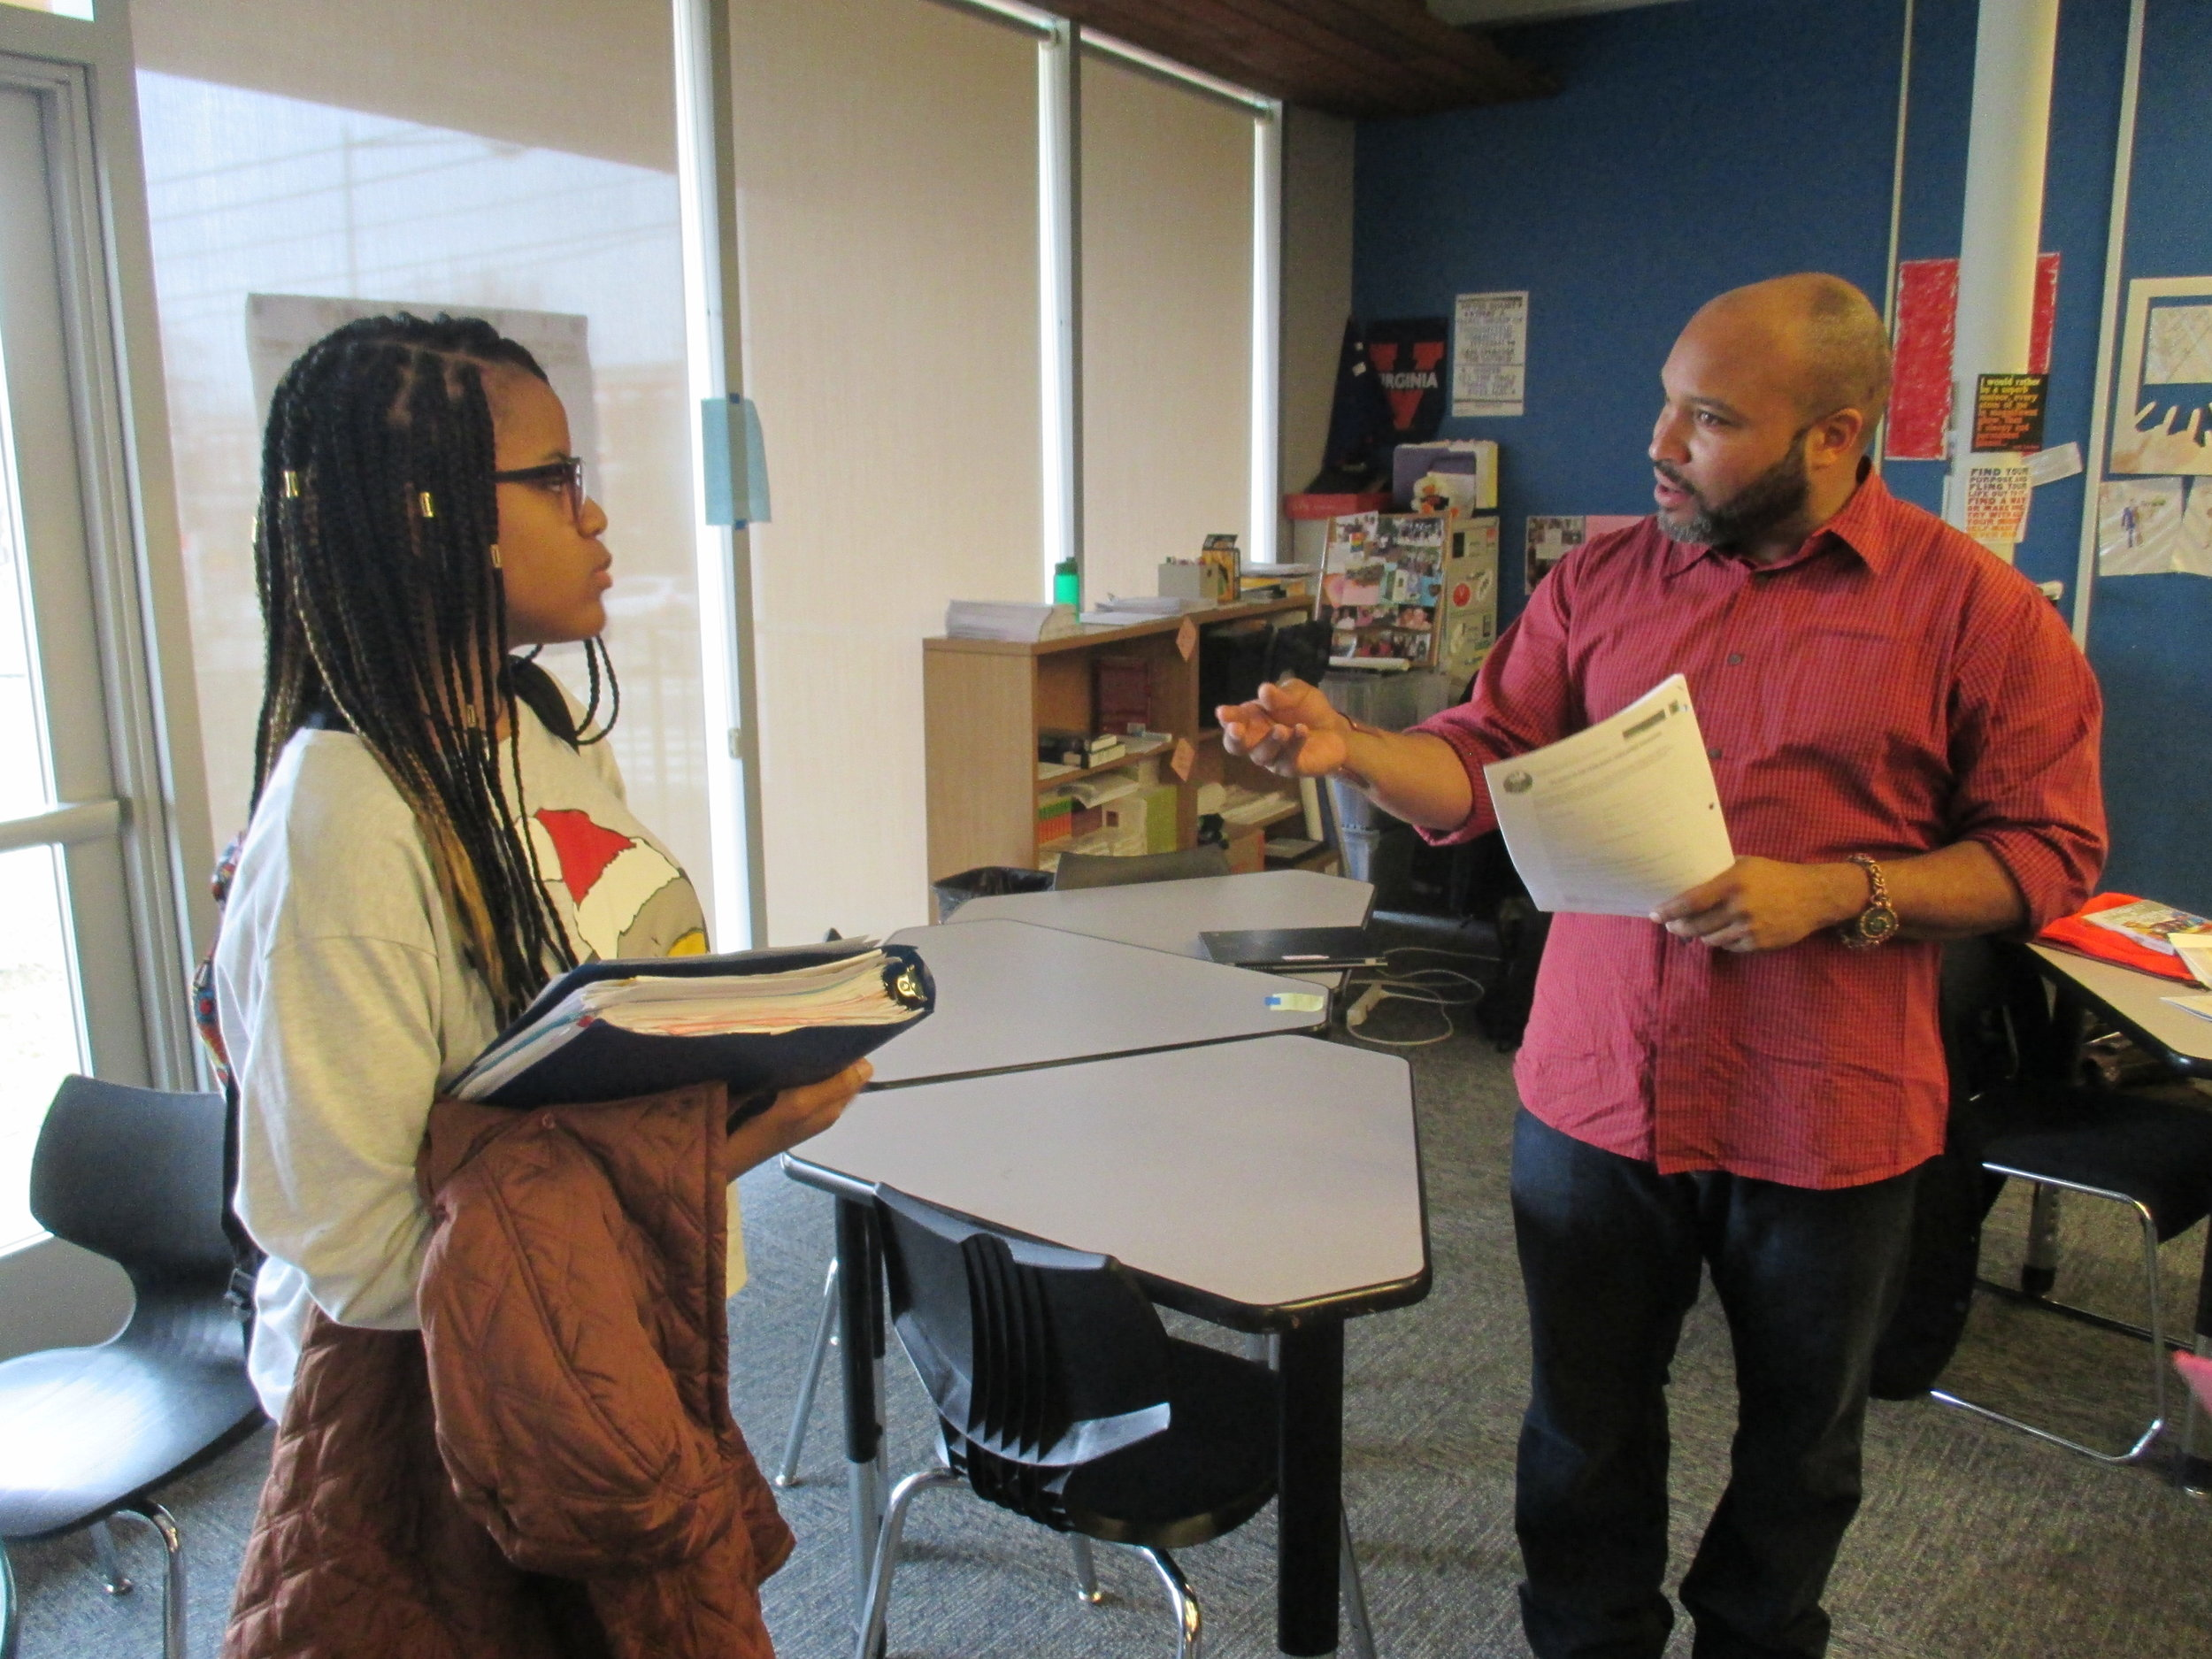 Executive director of the Pearl Coalition, David Smith, speaking with a student.